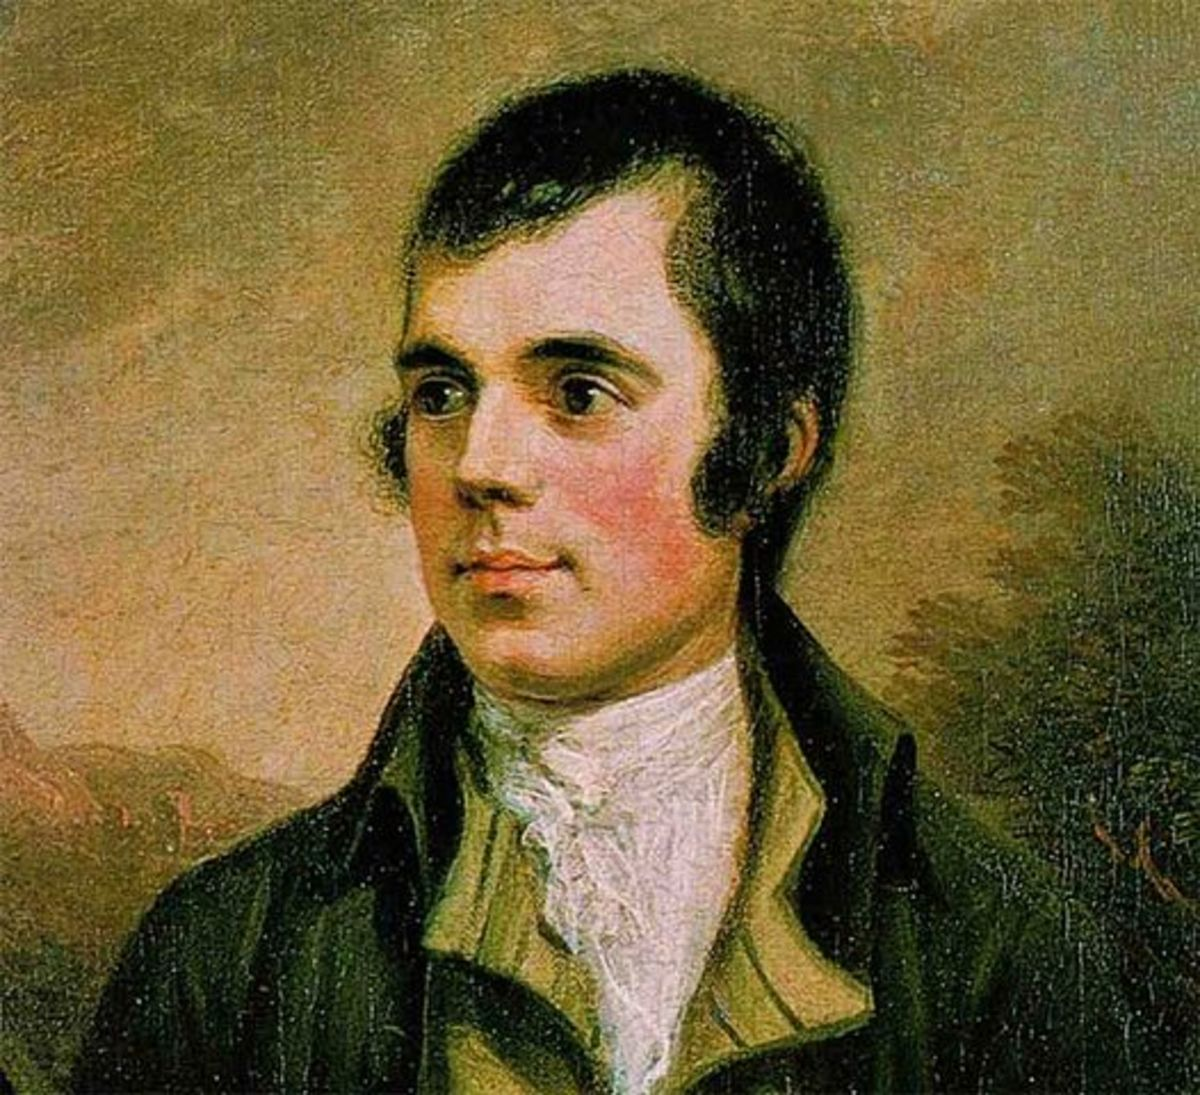 Tam O'Shanter: a poem by Robert Burns